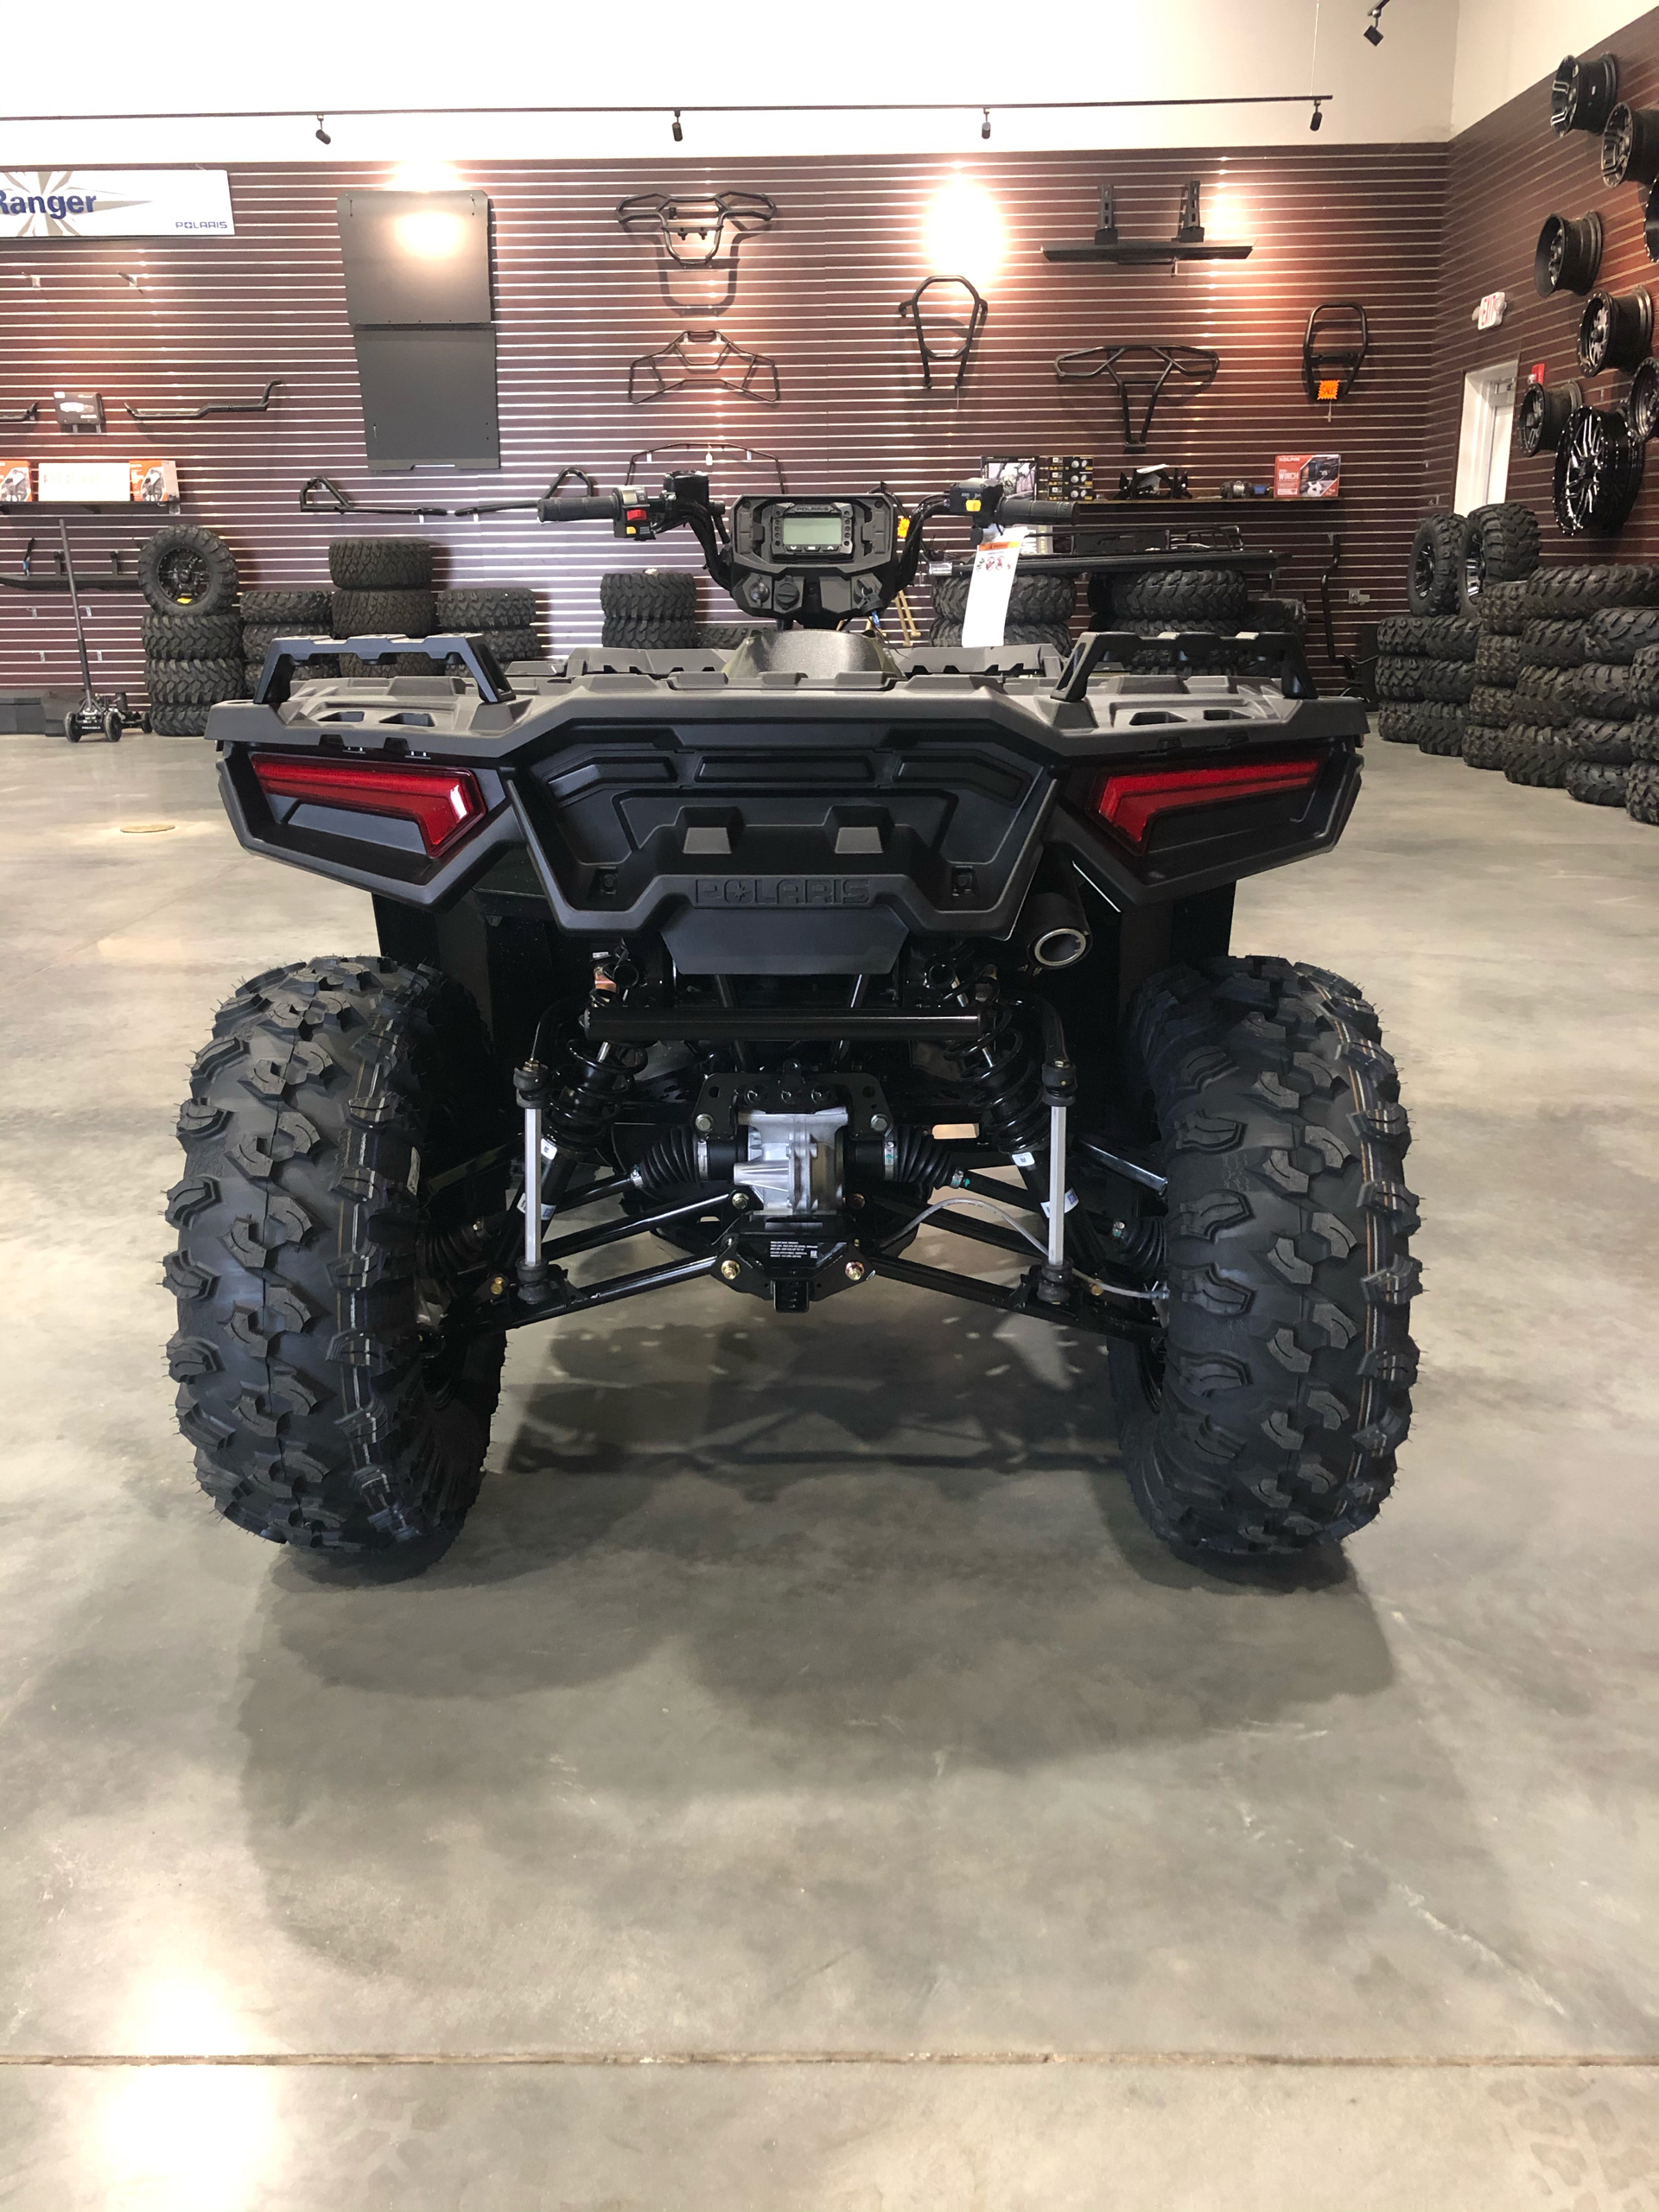 2021 Polaris Sportsman 850 in Conway, Arkansas - Photo 4